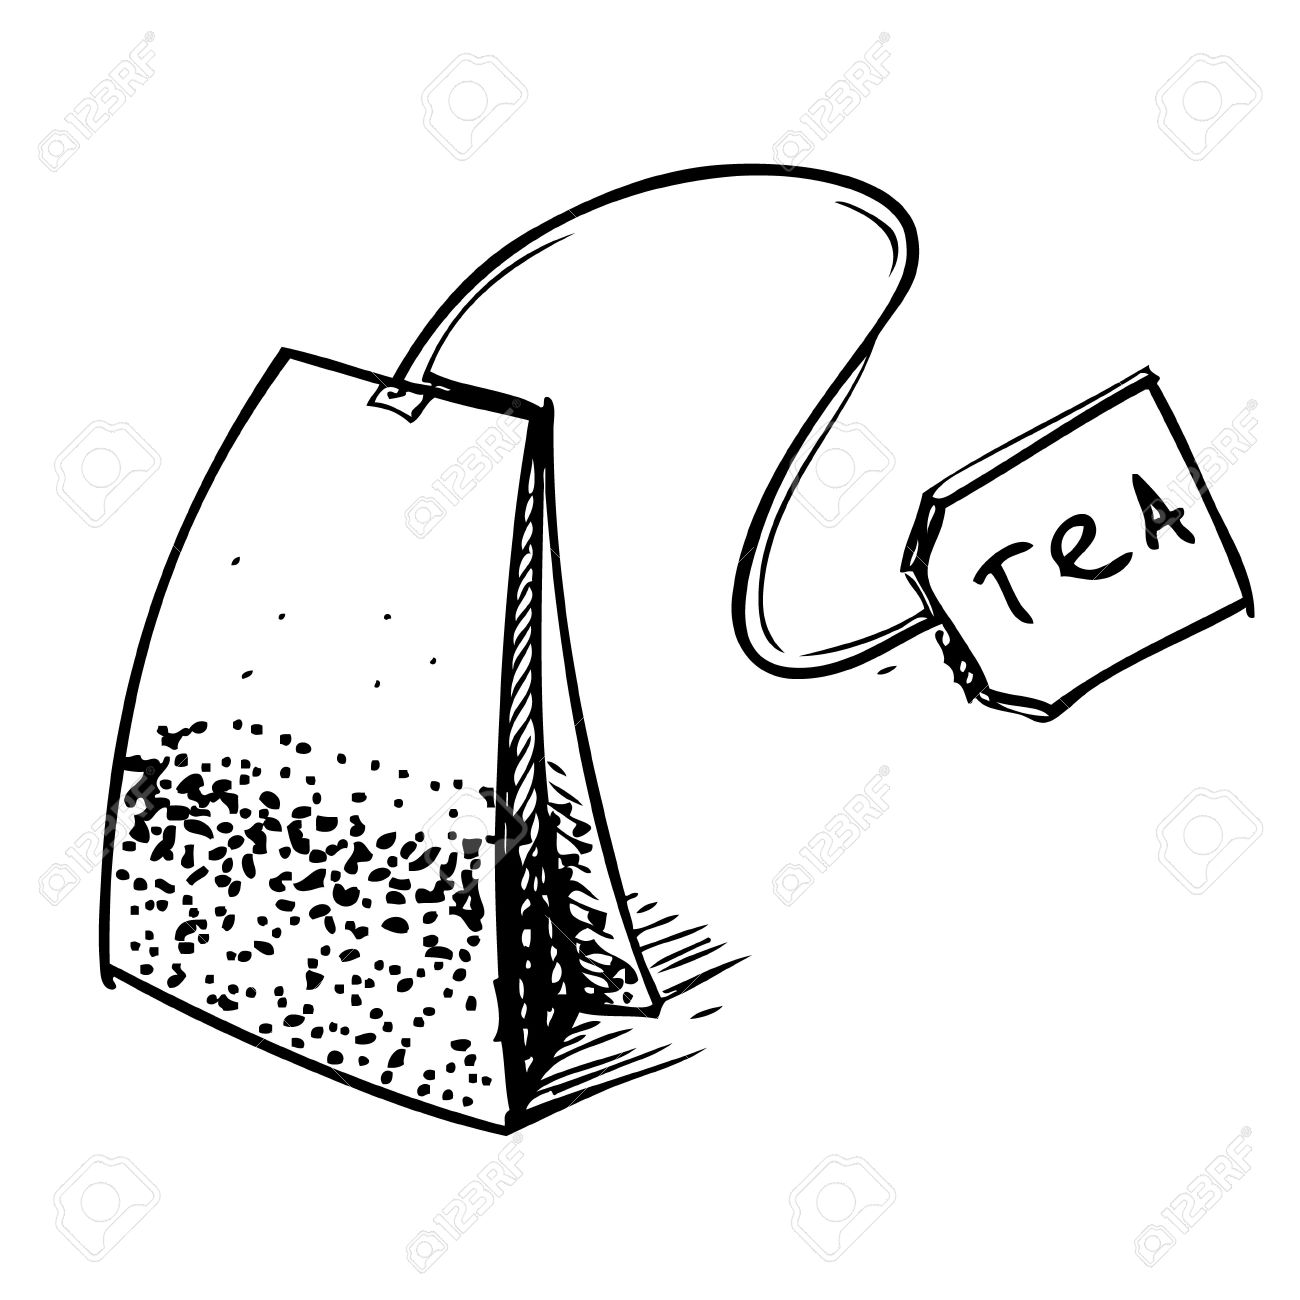 Free clipart tea bag.